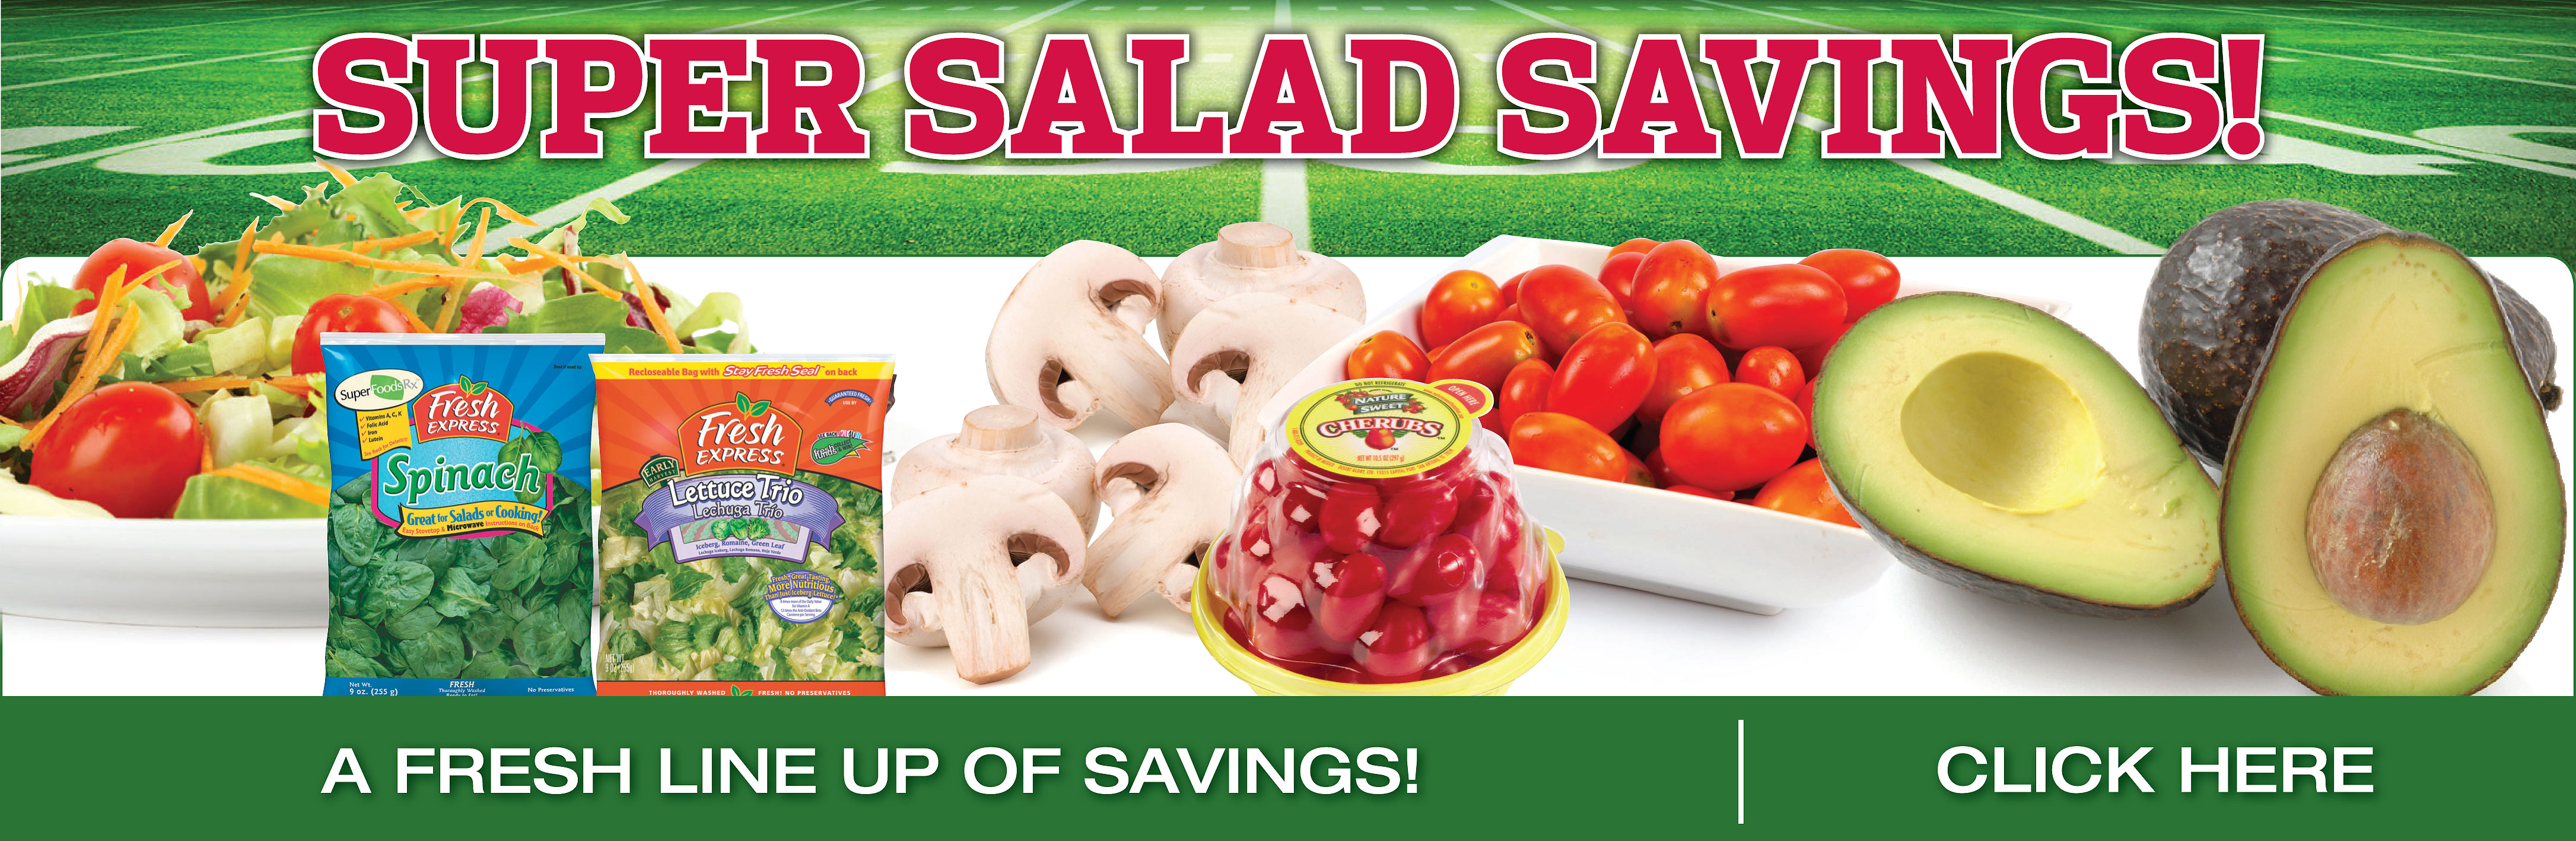 Super Salad Savings